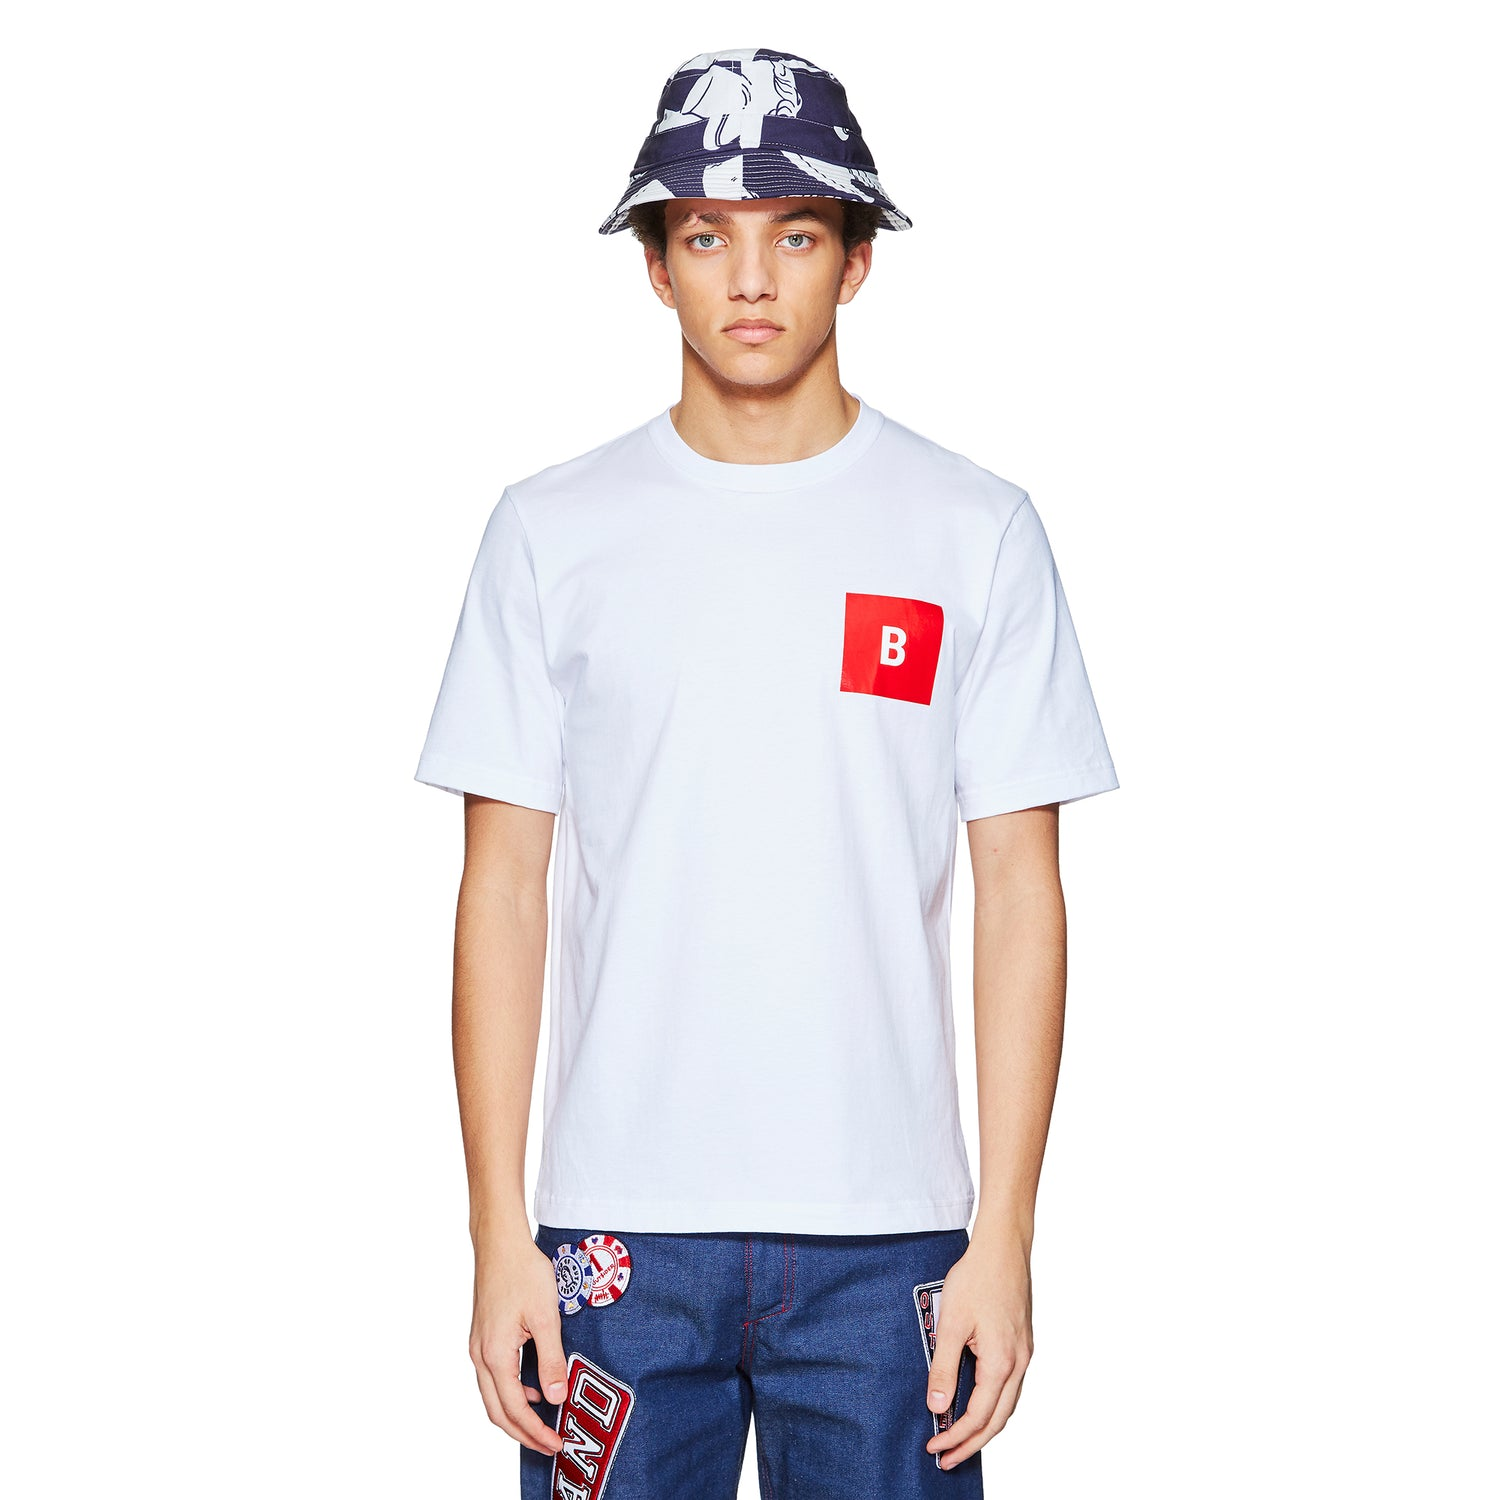 B LOGO WHITE/RED T-SHIRT